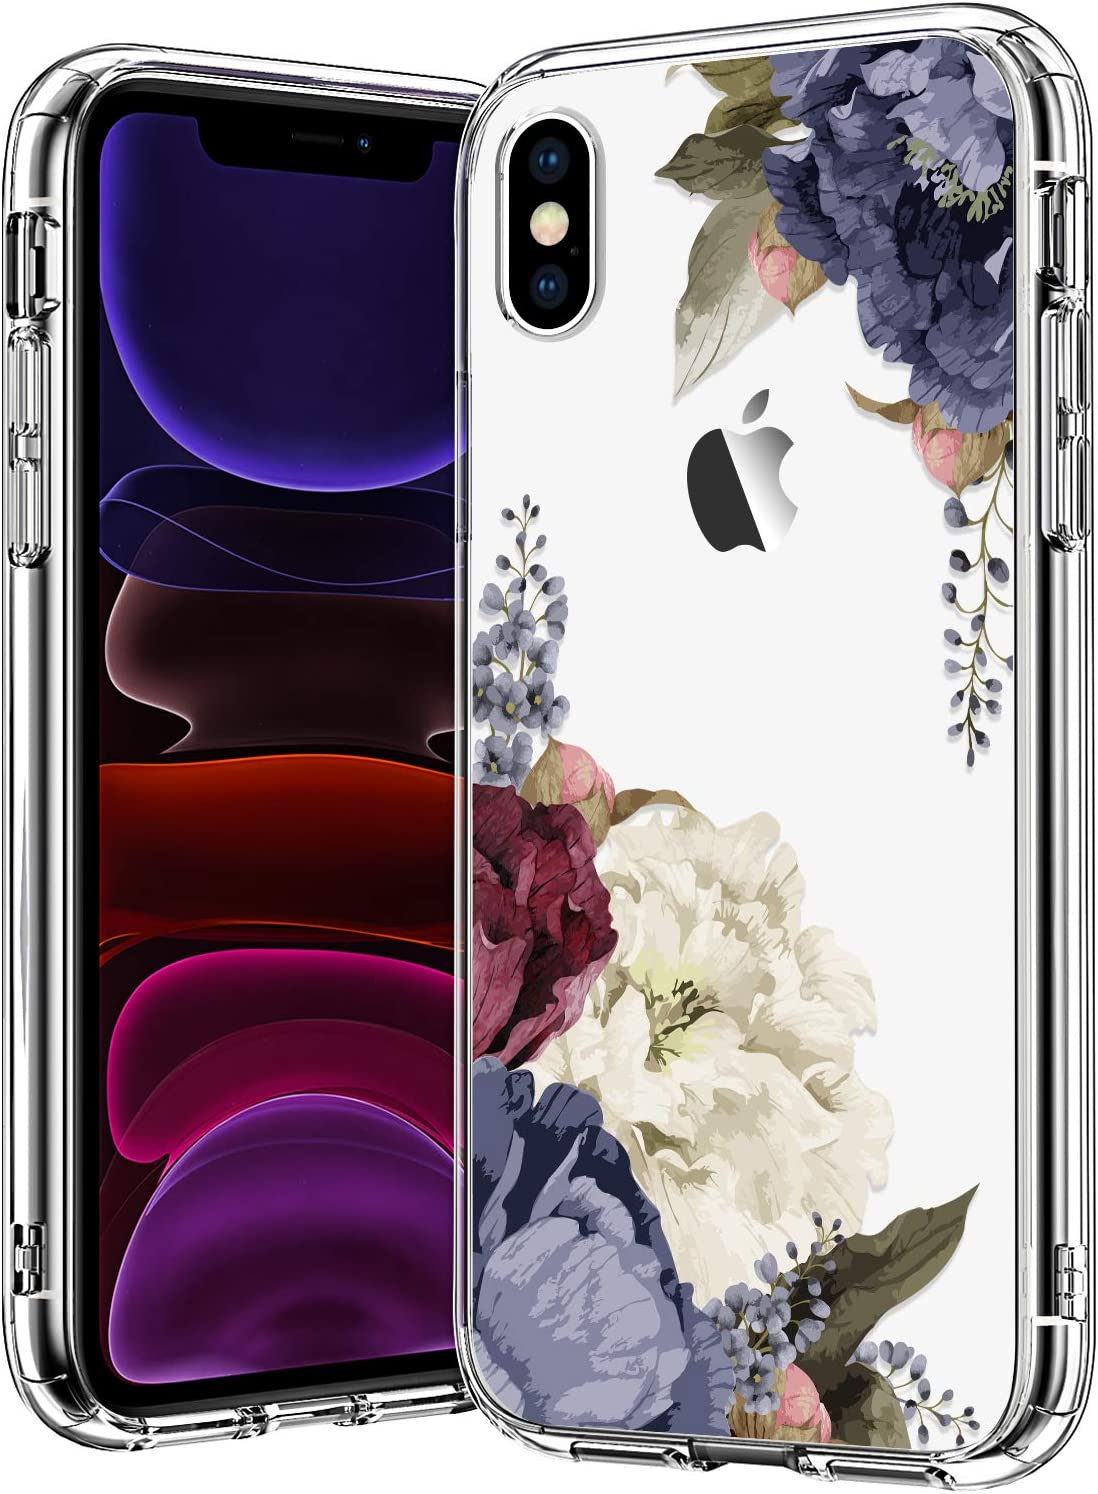 BICOL iPhone X/iPhone Xs Case,Purple Champagne Floral Flower Pattern Clear with Design Plastic Hard Back Case with Soft TPU Bumper Protective Cover Phone Case for Apple iPhone X/iPhone Xs